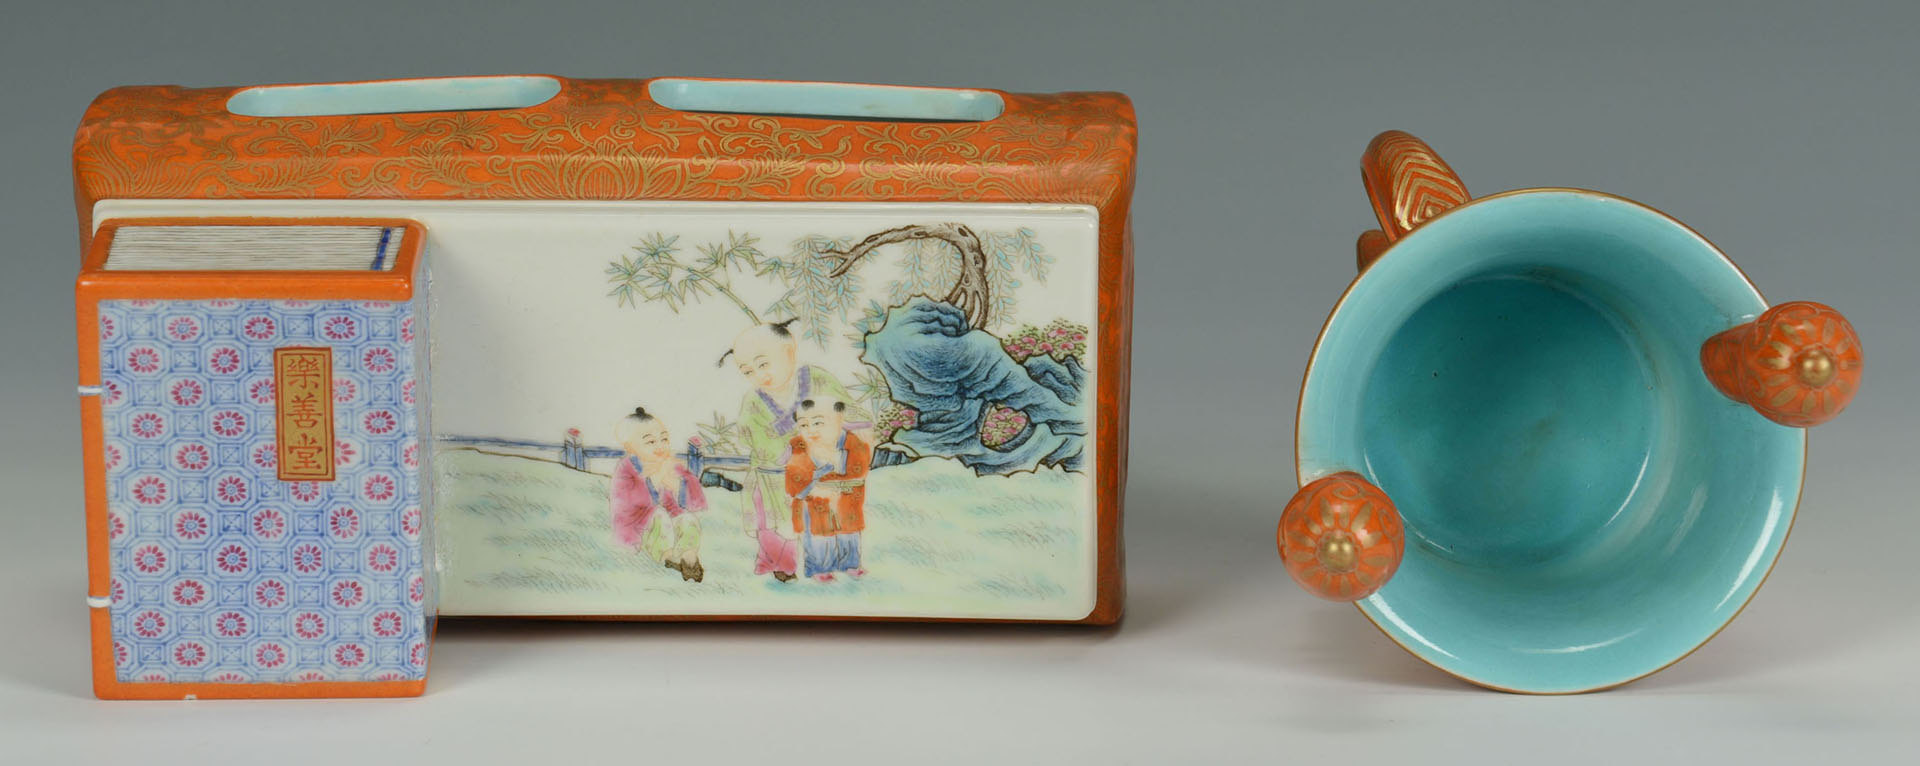 Lot 3088282: 2 Chinese Porcelain Items, Box & Tripod Cup